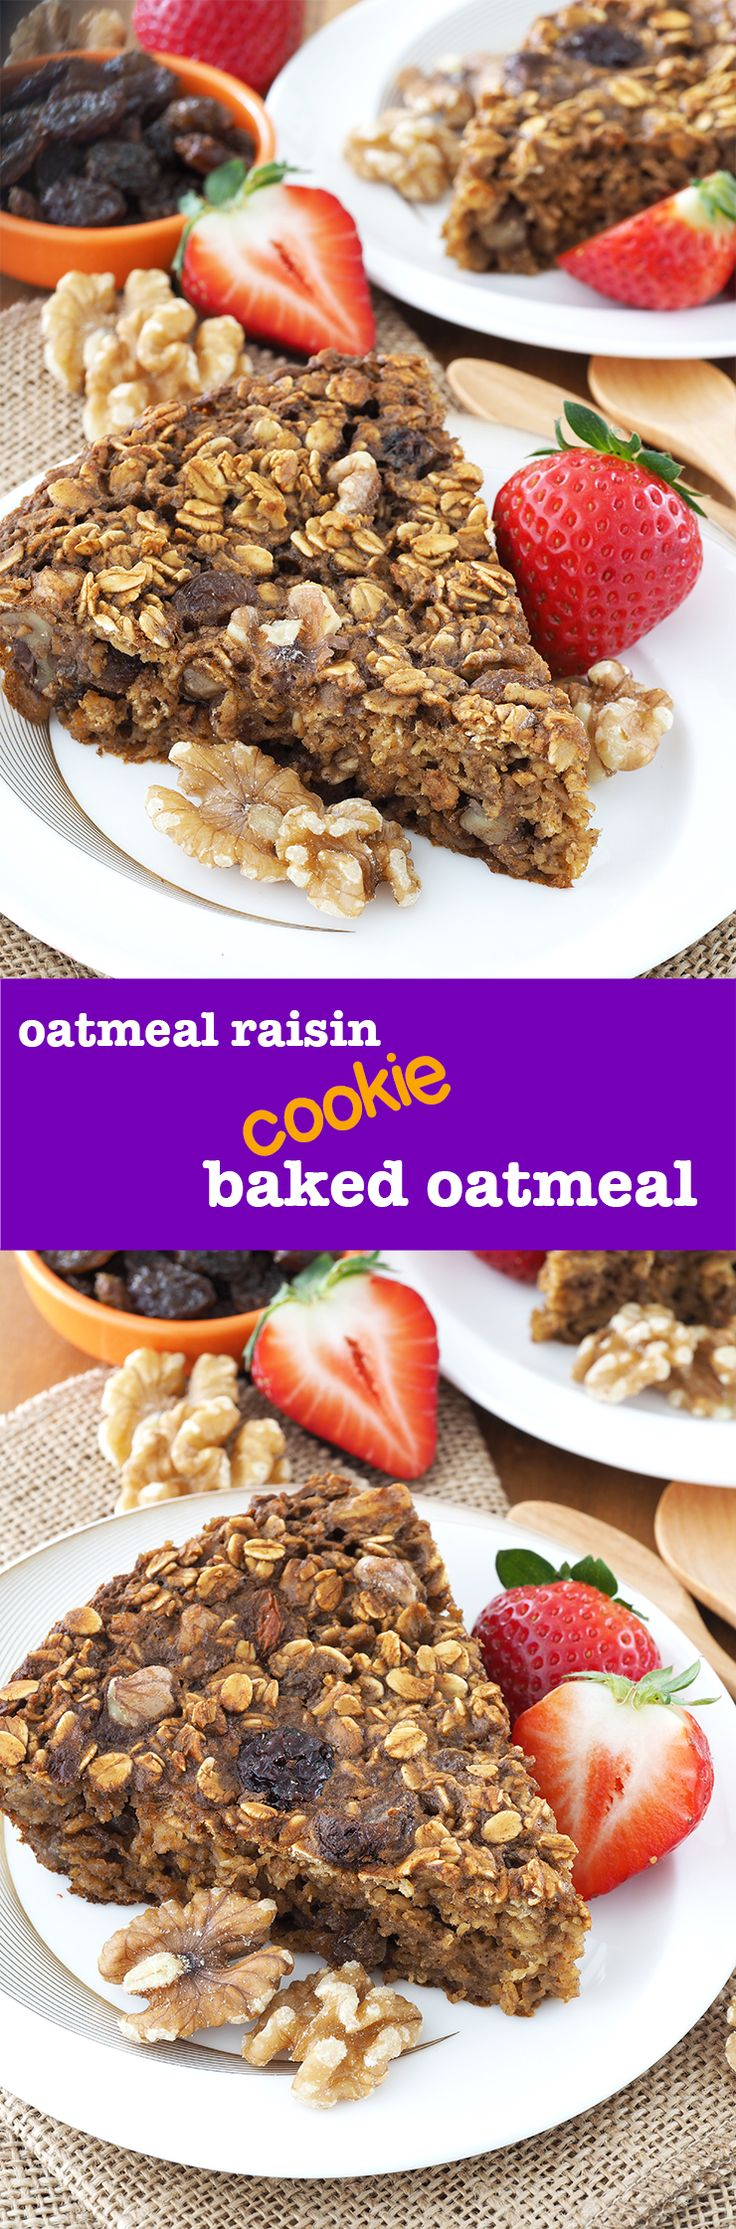 A breakfast version of a giant oatmeal raisin cookie in the form of easy and healthy(ish) baked oatmeal. It may only be August 4, but I'm already excited about August 13. For one thing, August 13 is the day before my birthday – my 'Birthday Eve', if you will. But more importantly, it's International Left-Handers …